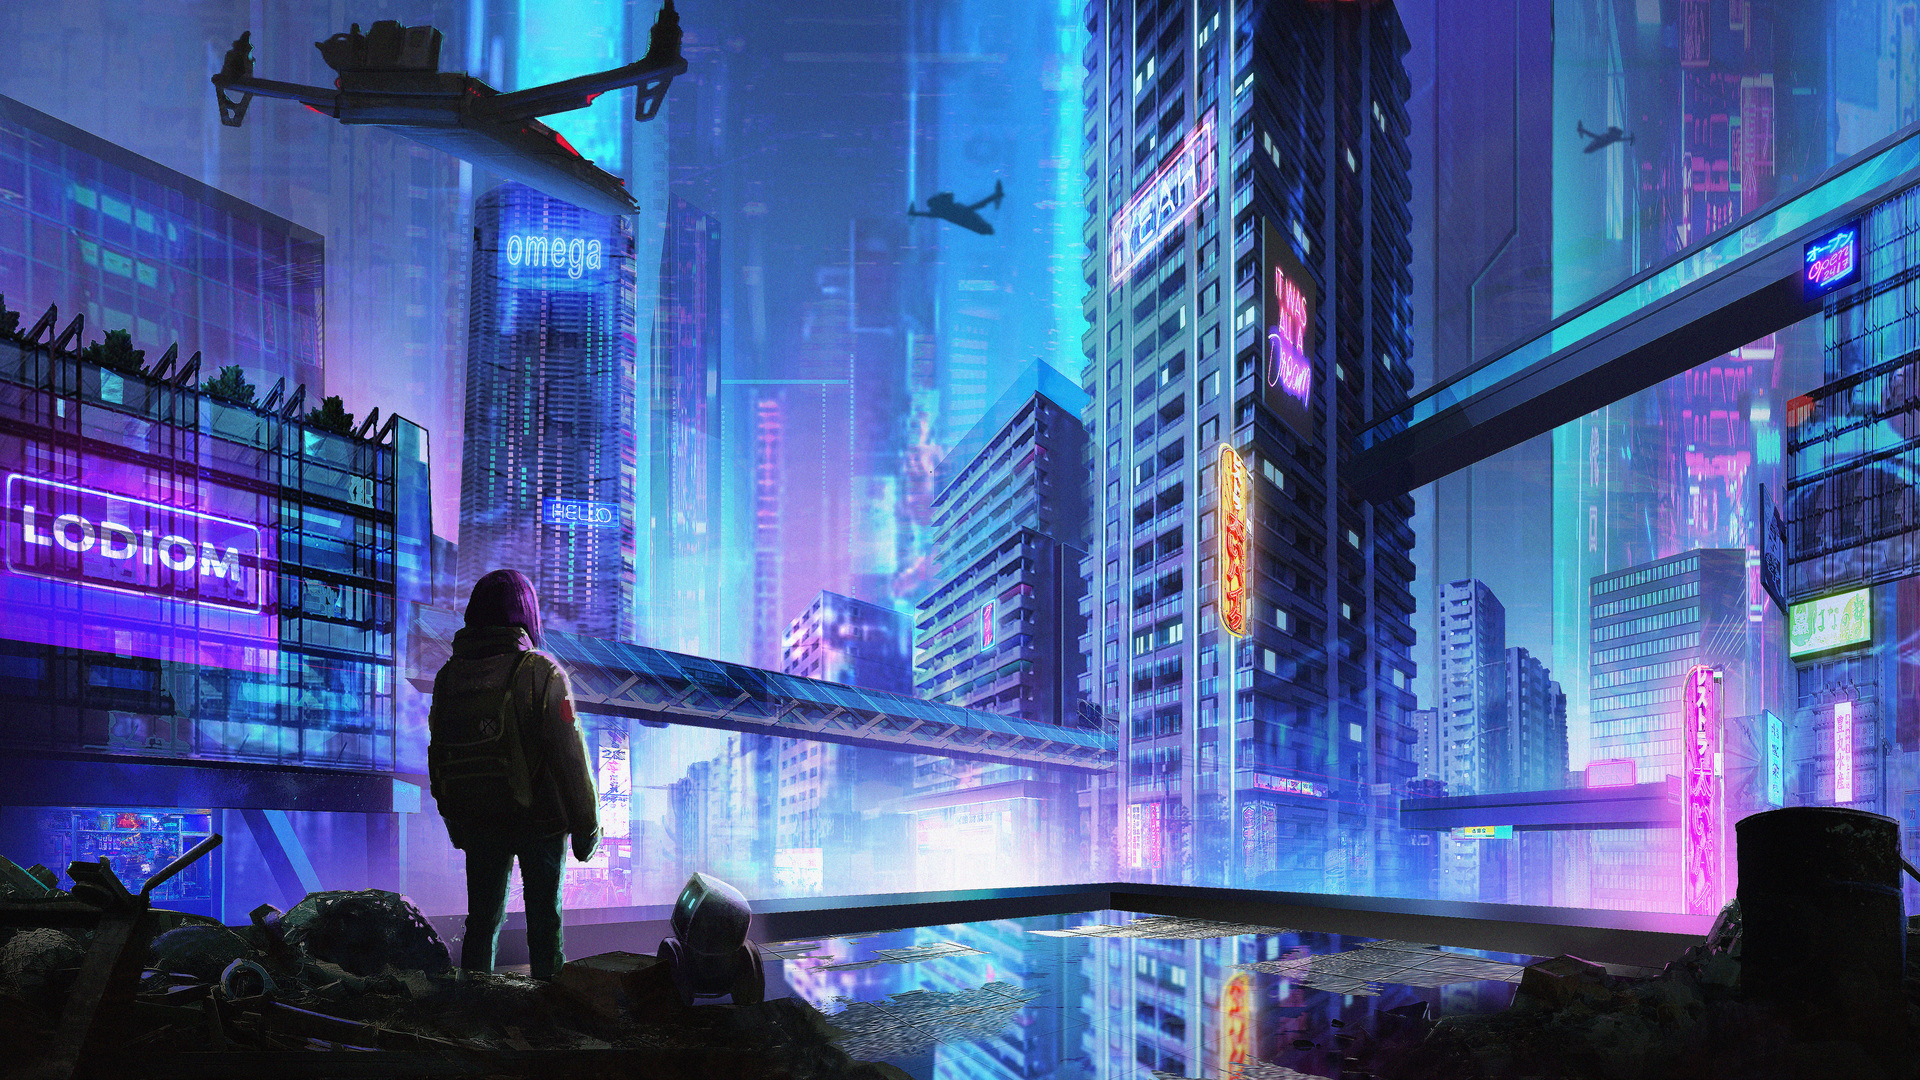 1920x1080 Scavenger Cityscape Cyberpunk 5k Laptop Full Hd 1080p Hd 4k Wallpapers Images Backgrounds Photos And Pictures Kiberpank oboi, kartinki, foto 1920x1080 ??? 1920x1080 scavenger cityscape cyberpunk